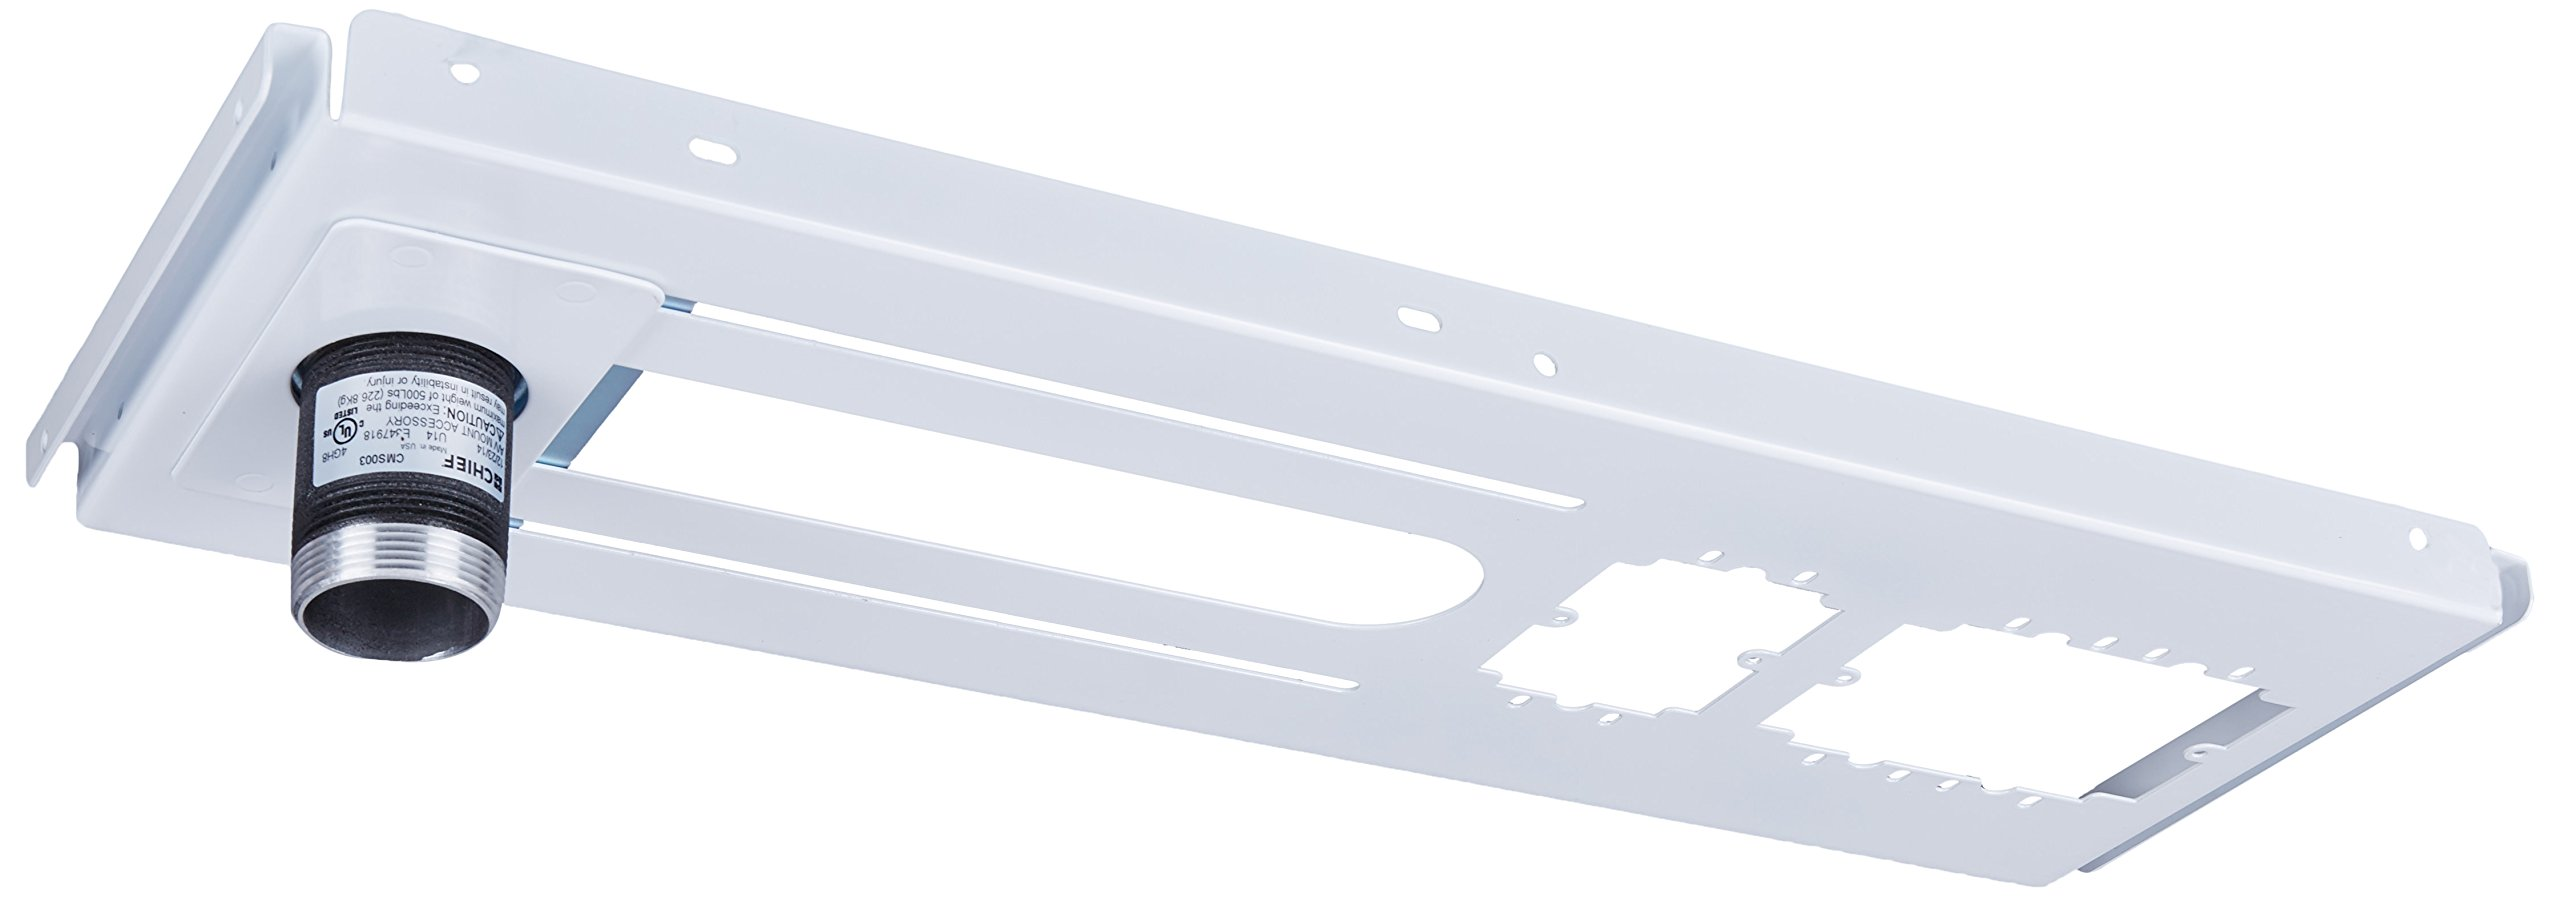 Sanus Systems CMS440 Chief Speed-Connect Lightweight Suspended Ceiling Kit